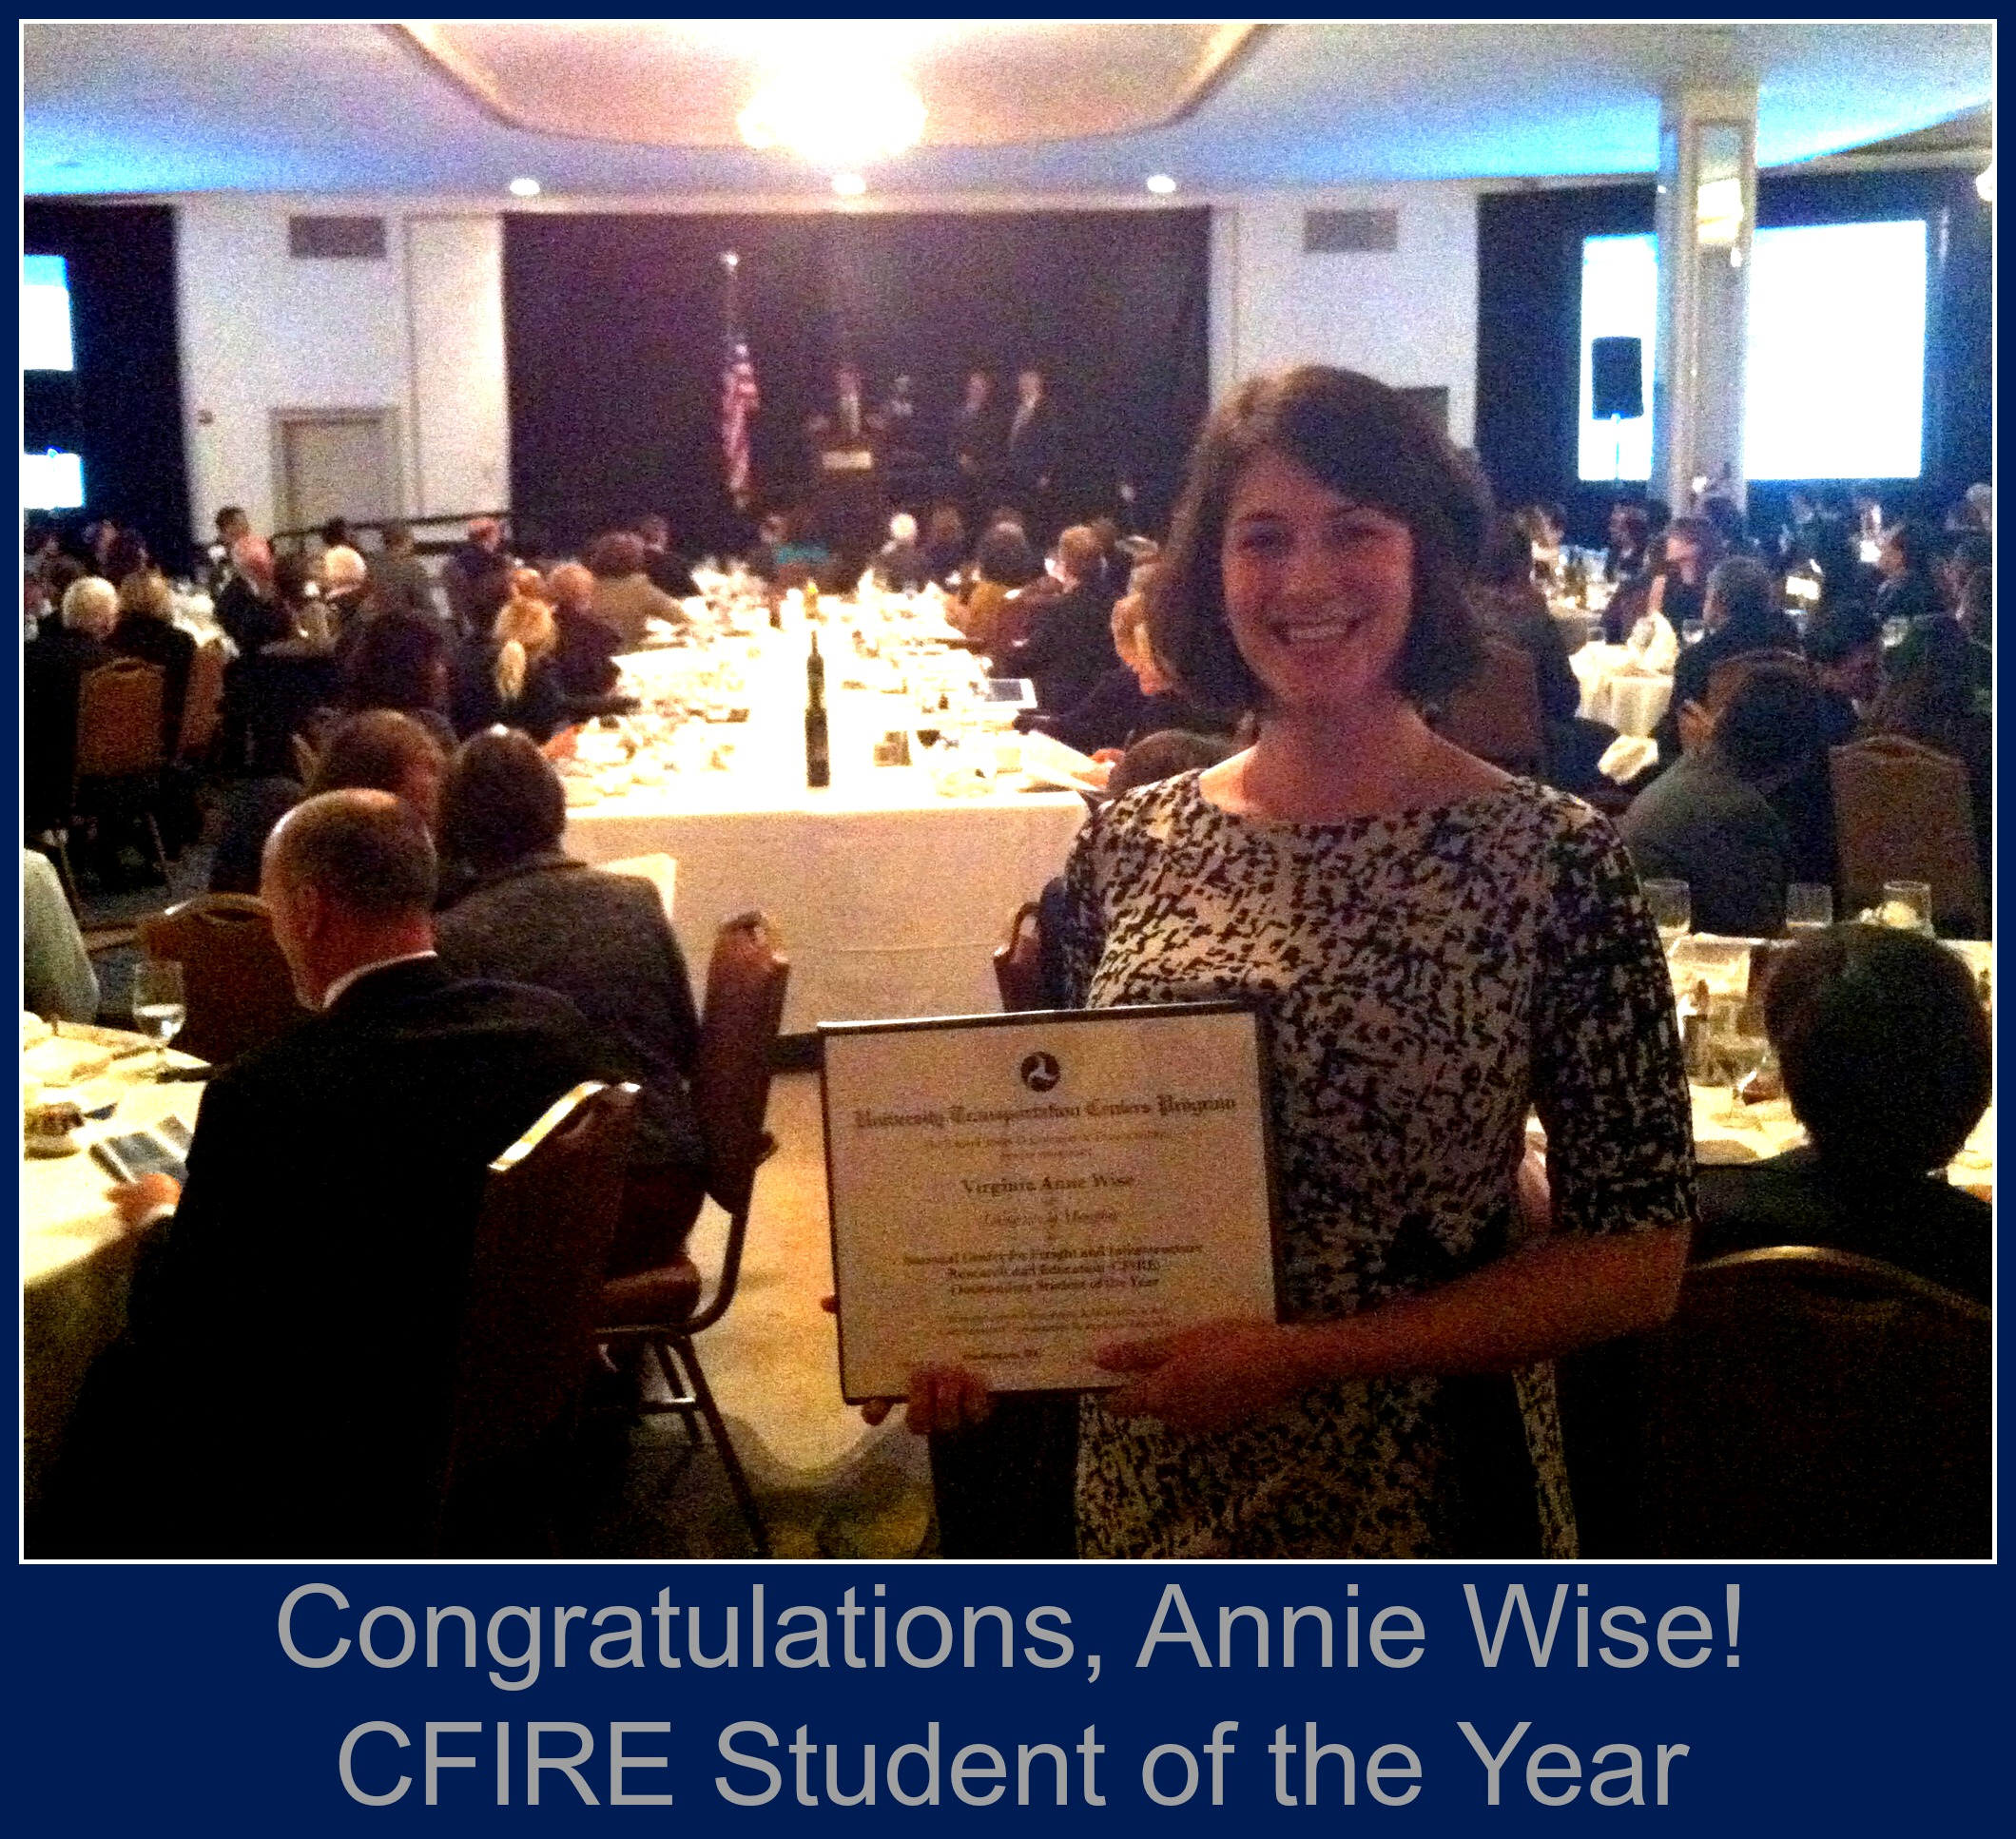 Annie is the CFIRE student of the year!